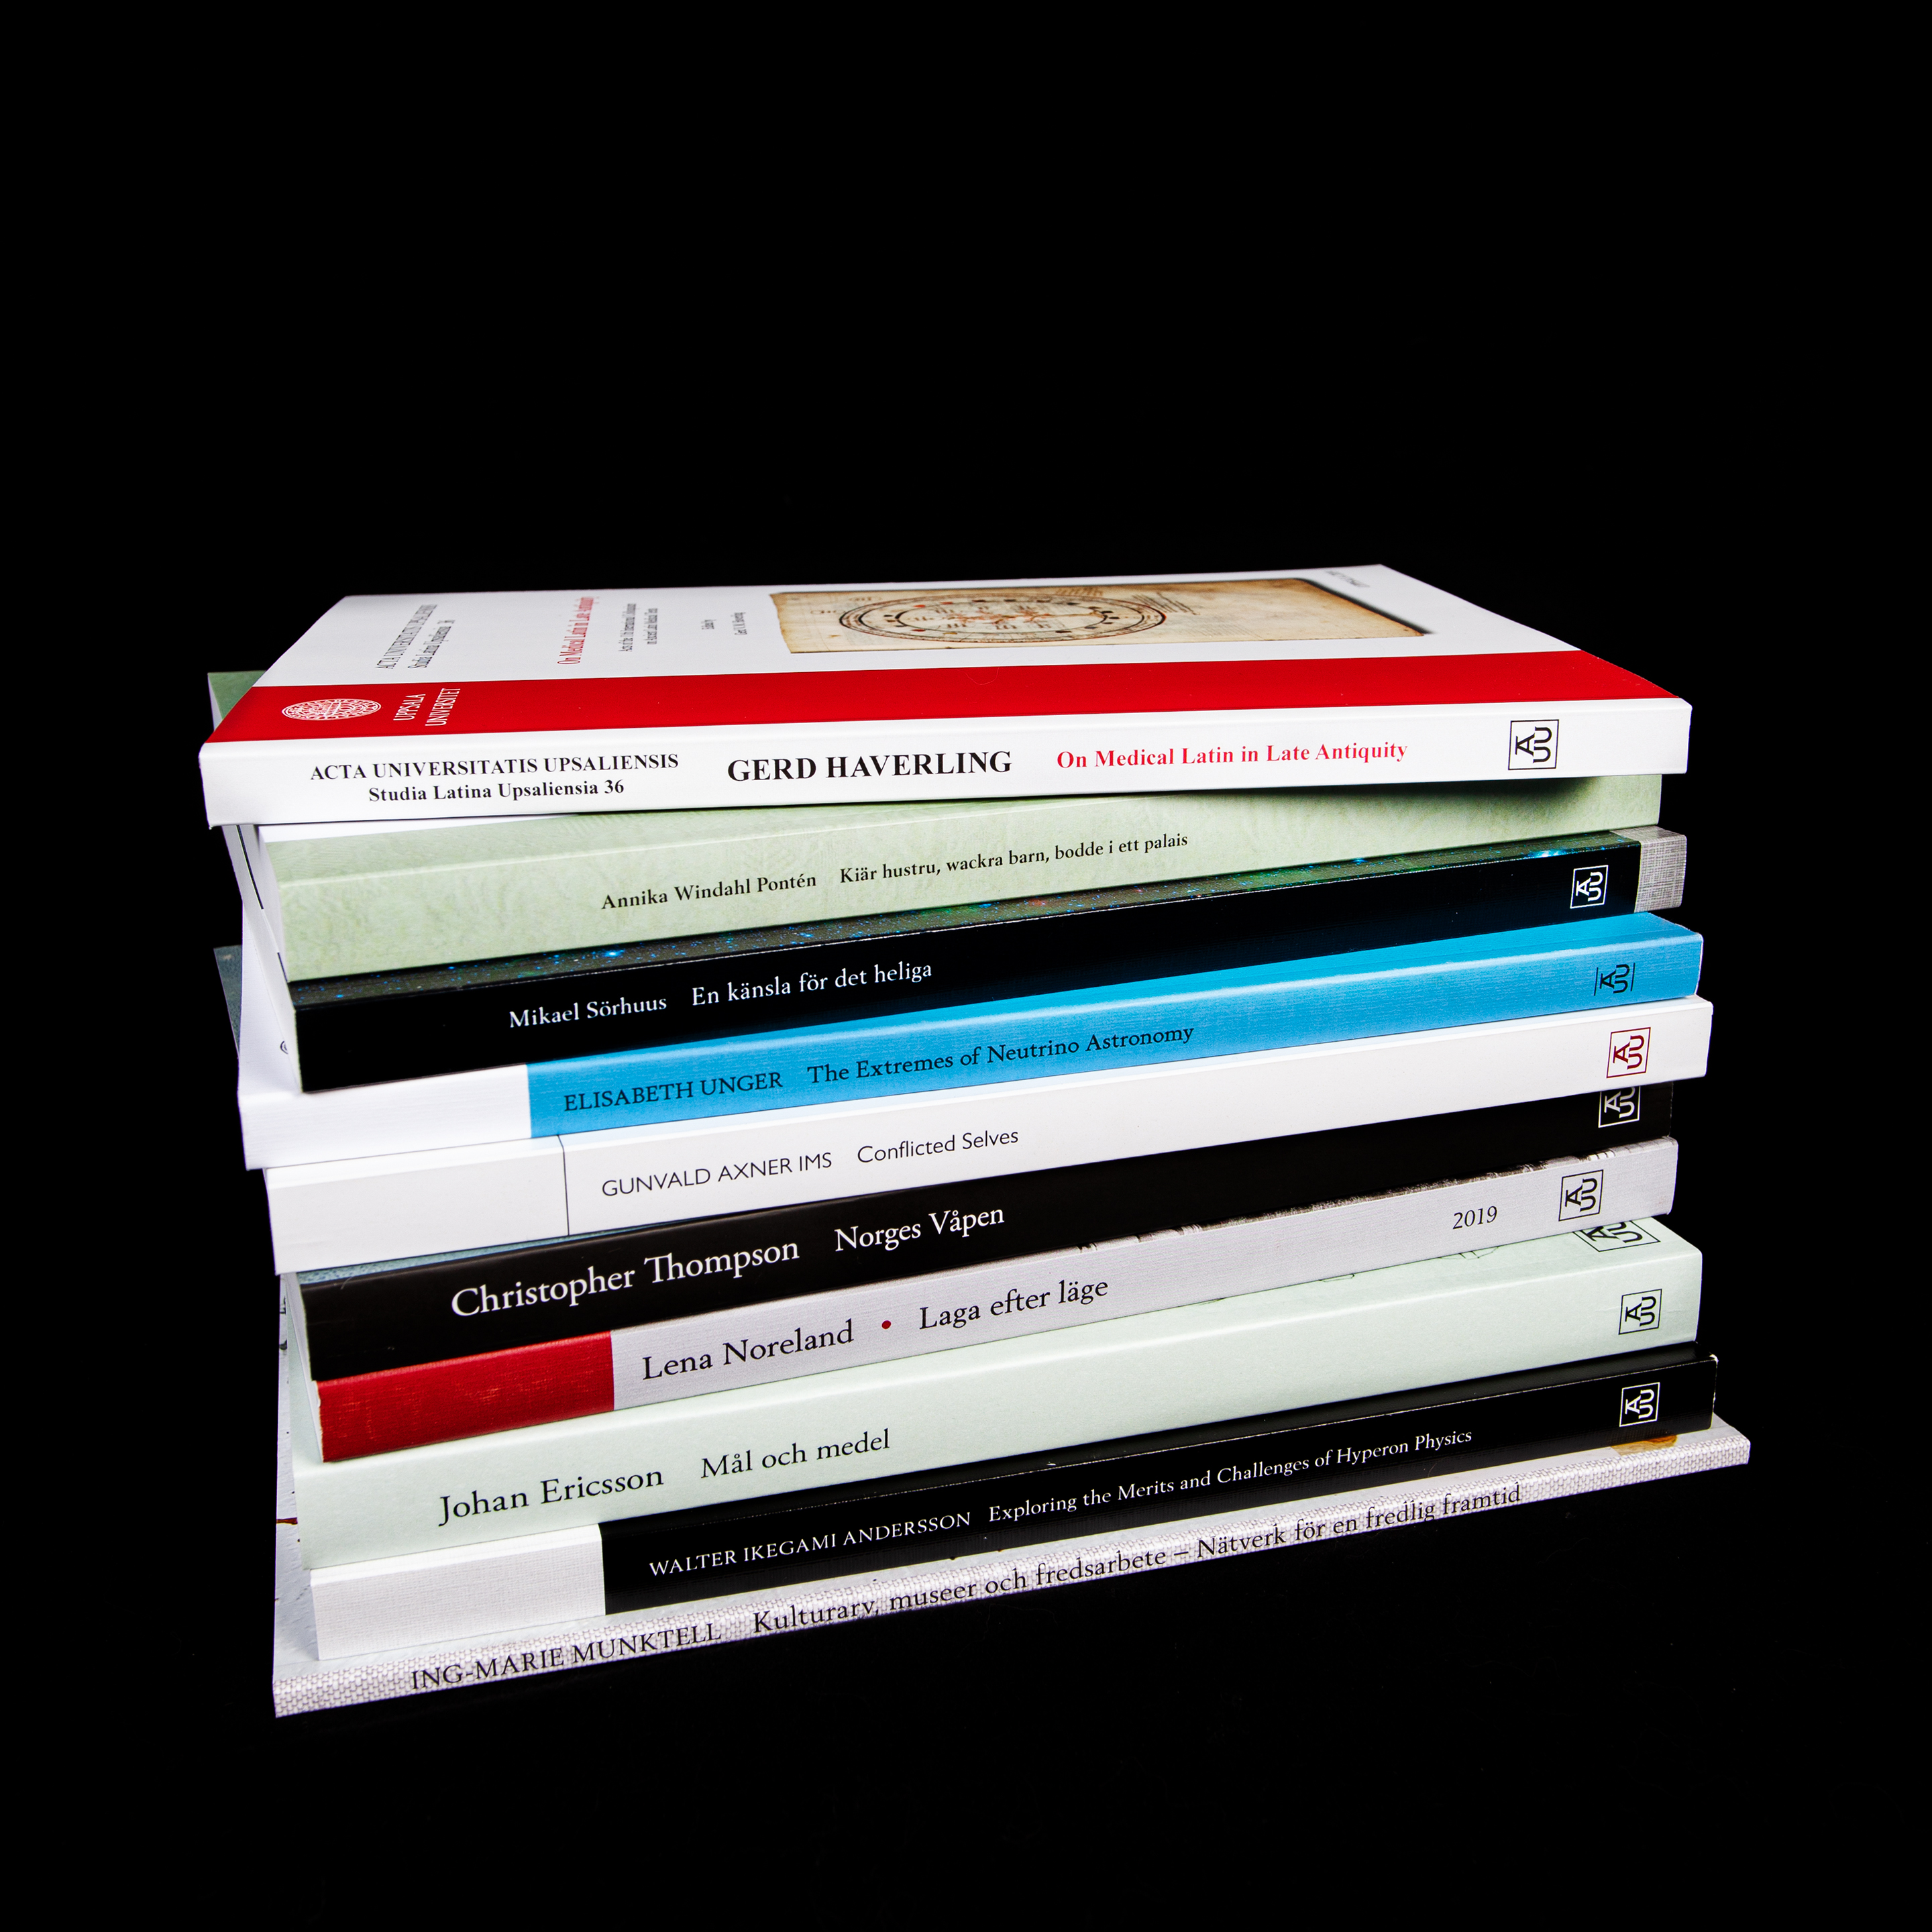 A pile of modern books with soft covers